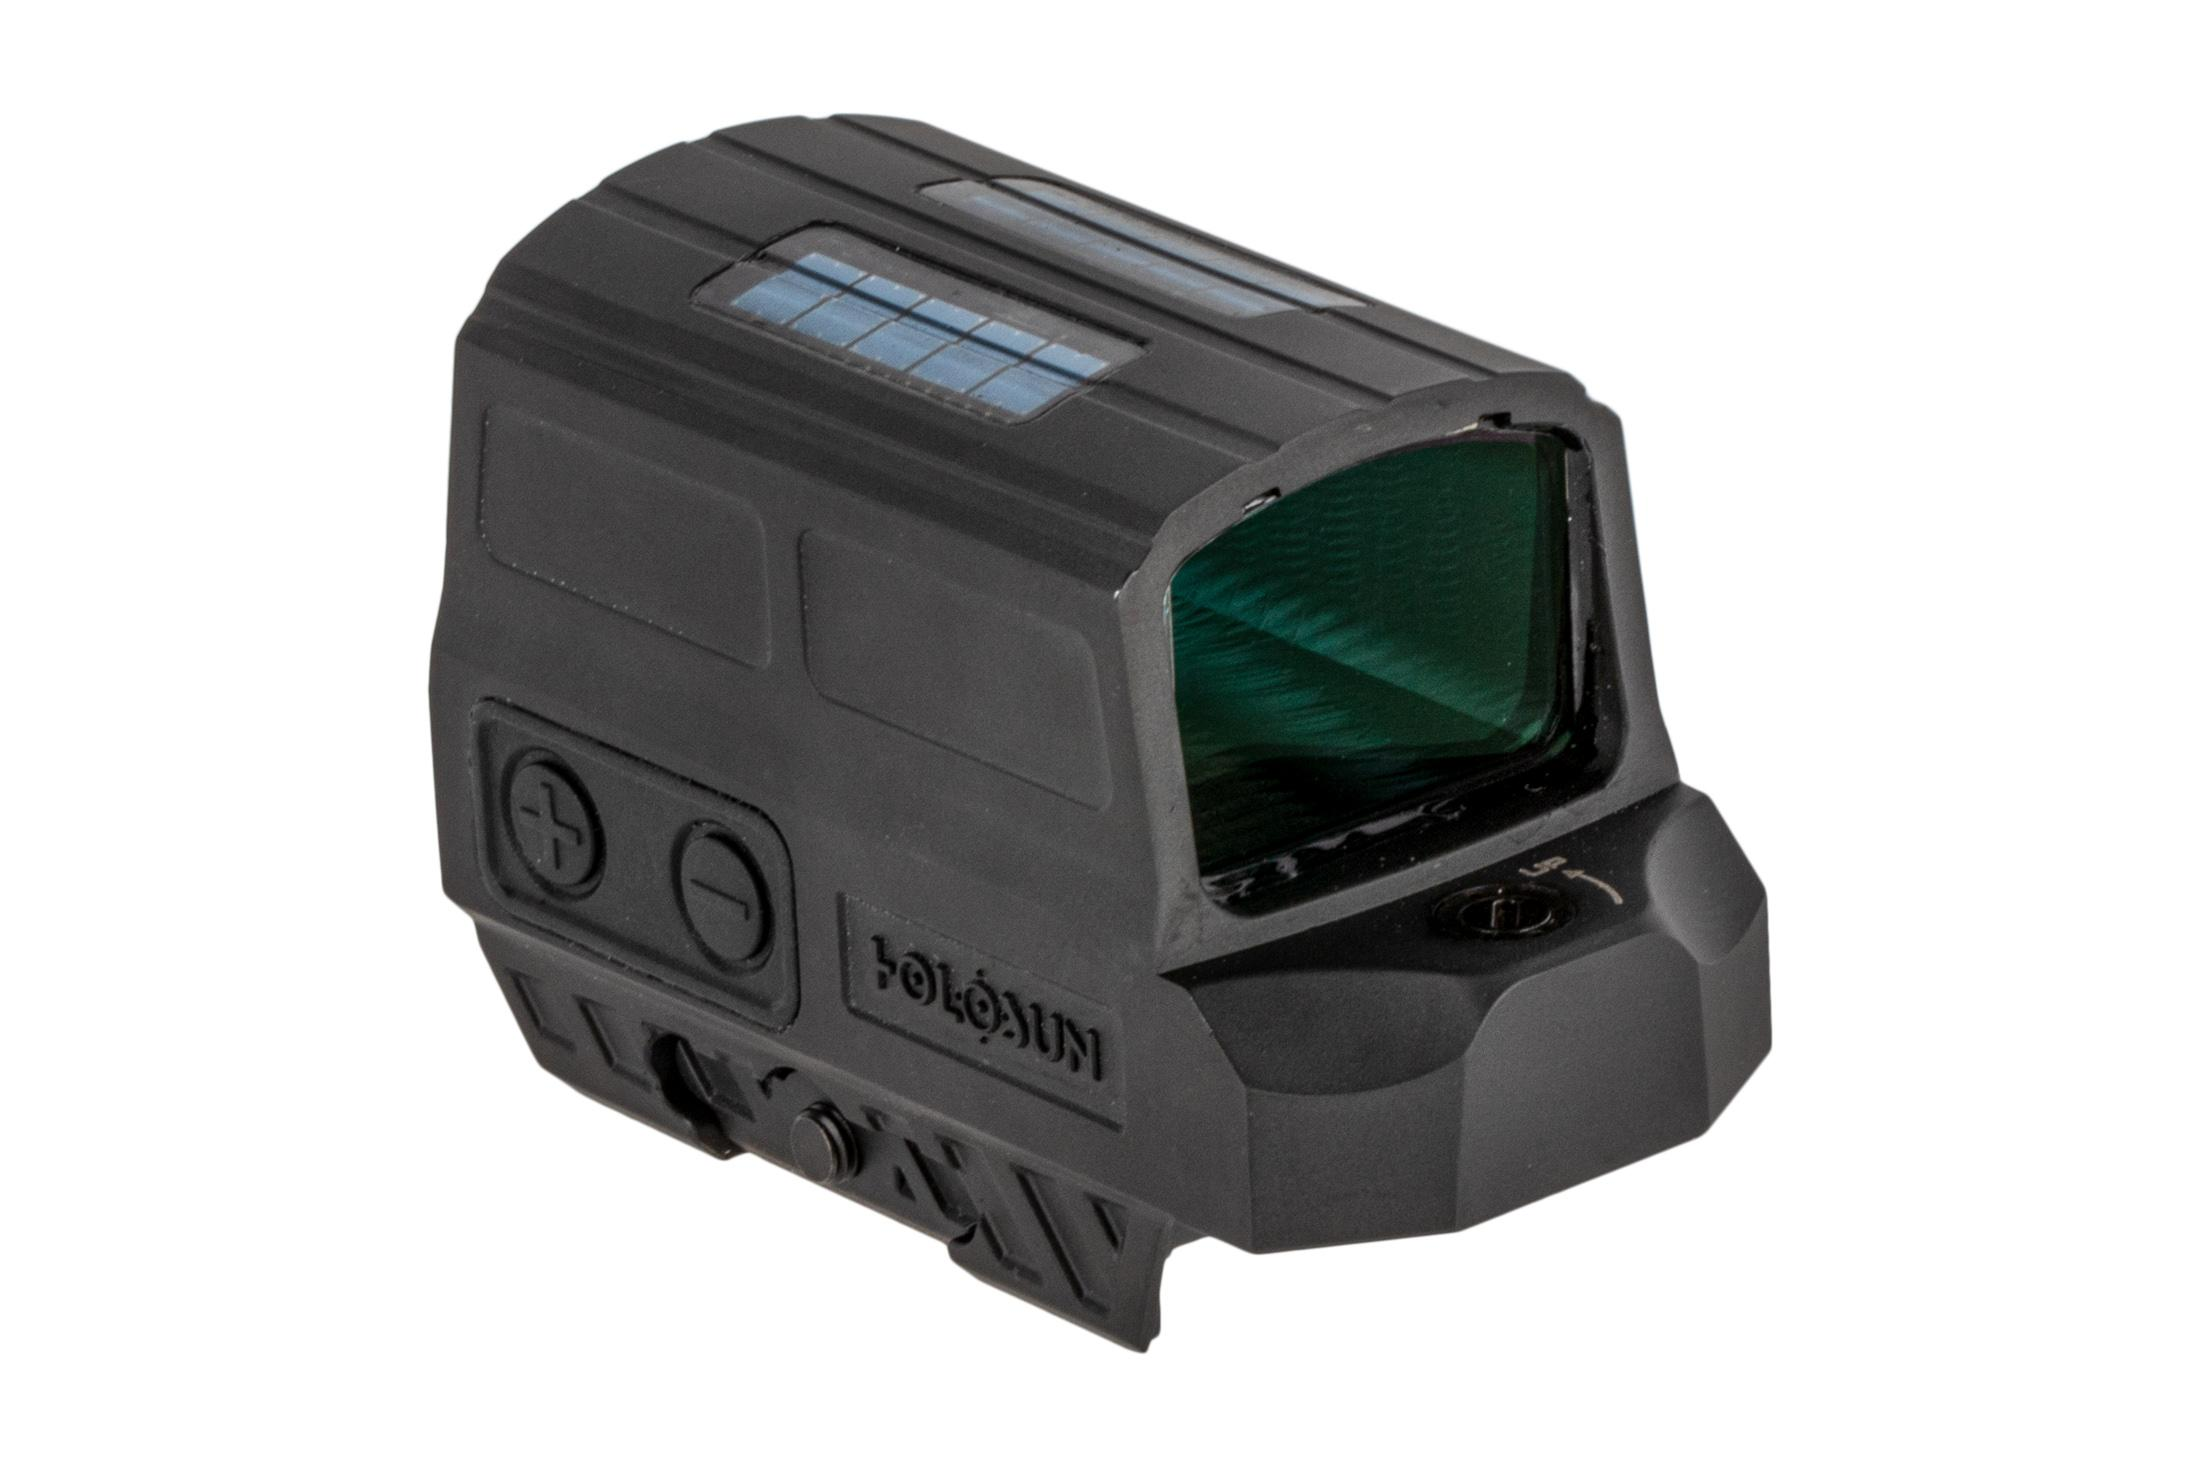 The Holosun HS512C Enclosed red dot sight features a solar failsafe function to prolong battery life